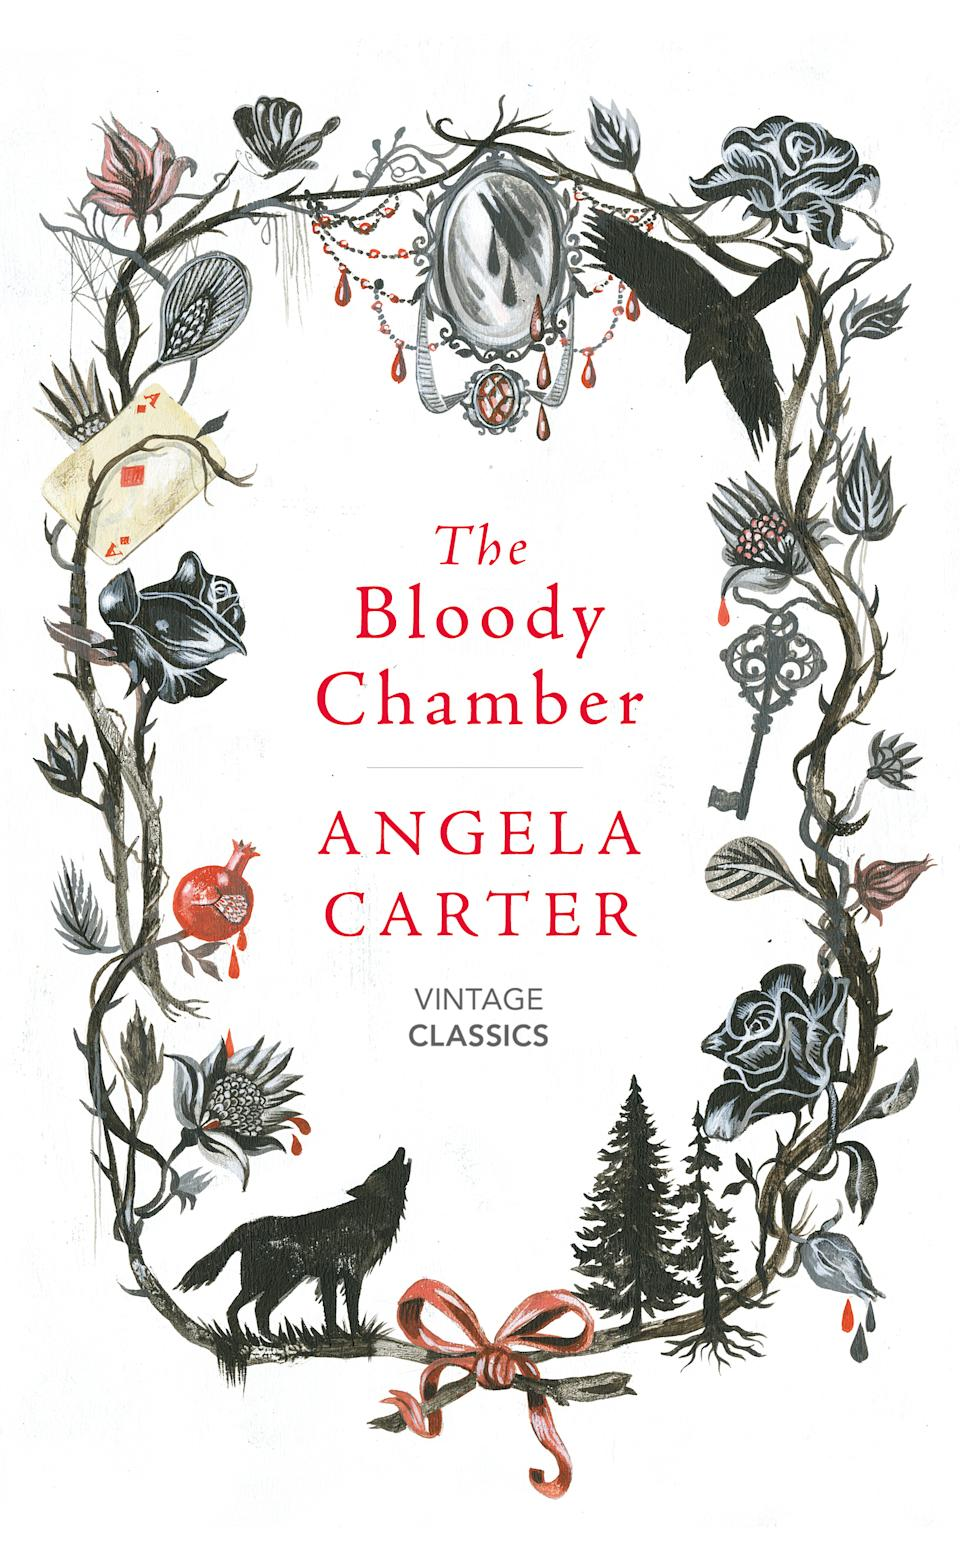 "Easily one of the best books I've ever read, Angela Carter's The Bloody Chamber is the feminist re-imagination of the classic fairy tales that I've grown up reading and watching, like Beauty and the Beast, The Red Riding Hood, Puss in the Boots and Snow White. I fell in love with her style of writing that she mixed with gothic and sexual themes. I would highly recommend this book, which you can buy <a href=""https://fave.co/3n7q3VY"" rel=""nofollow noopener"" target=""_blank"" data-ylk=""slk:here"" class=""link rapid-noclick-resp"">here</a>."